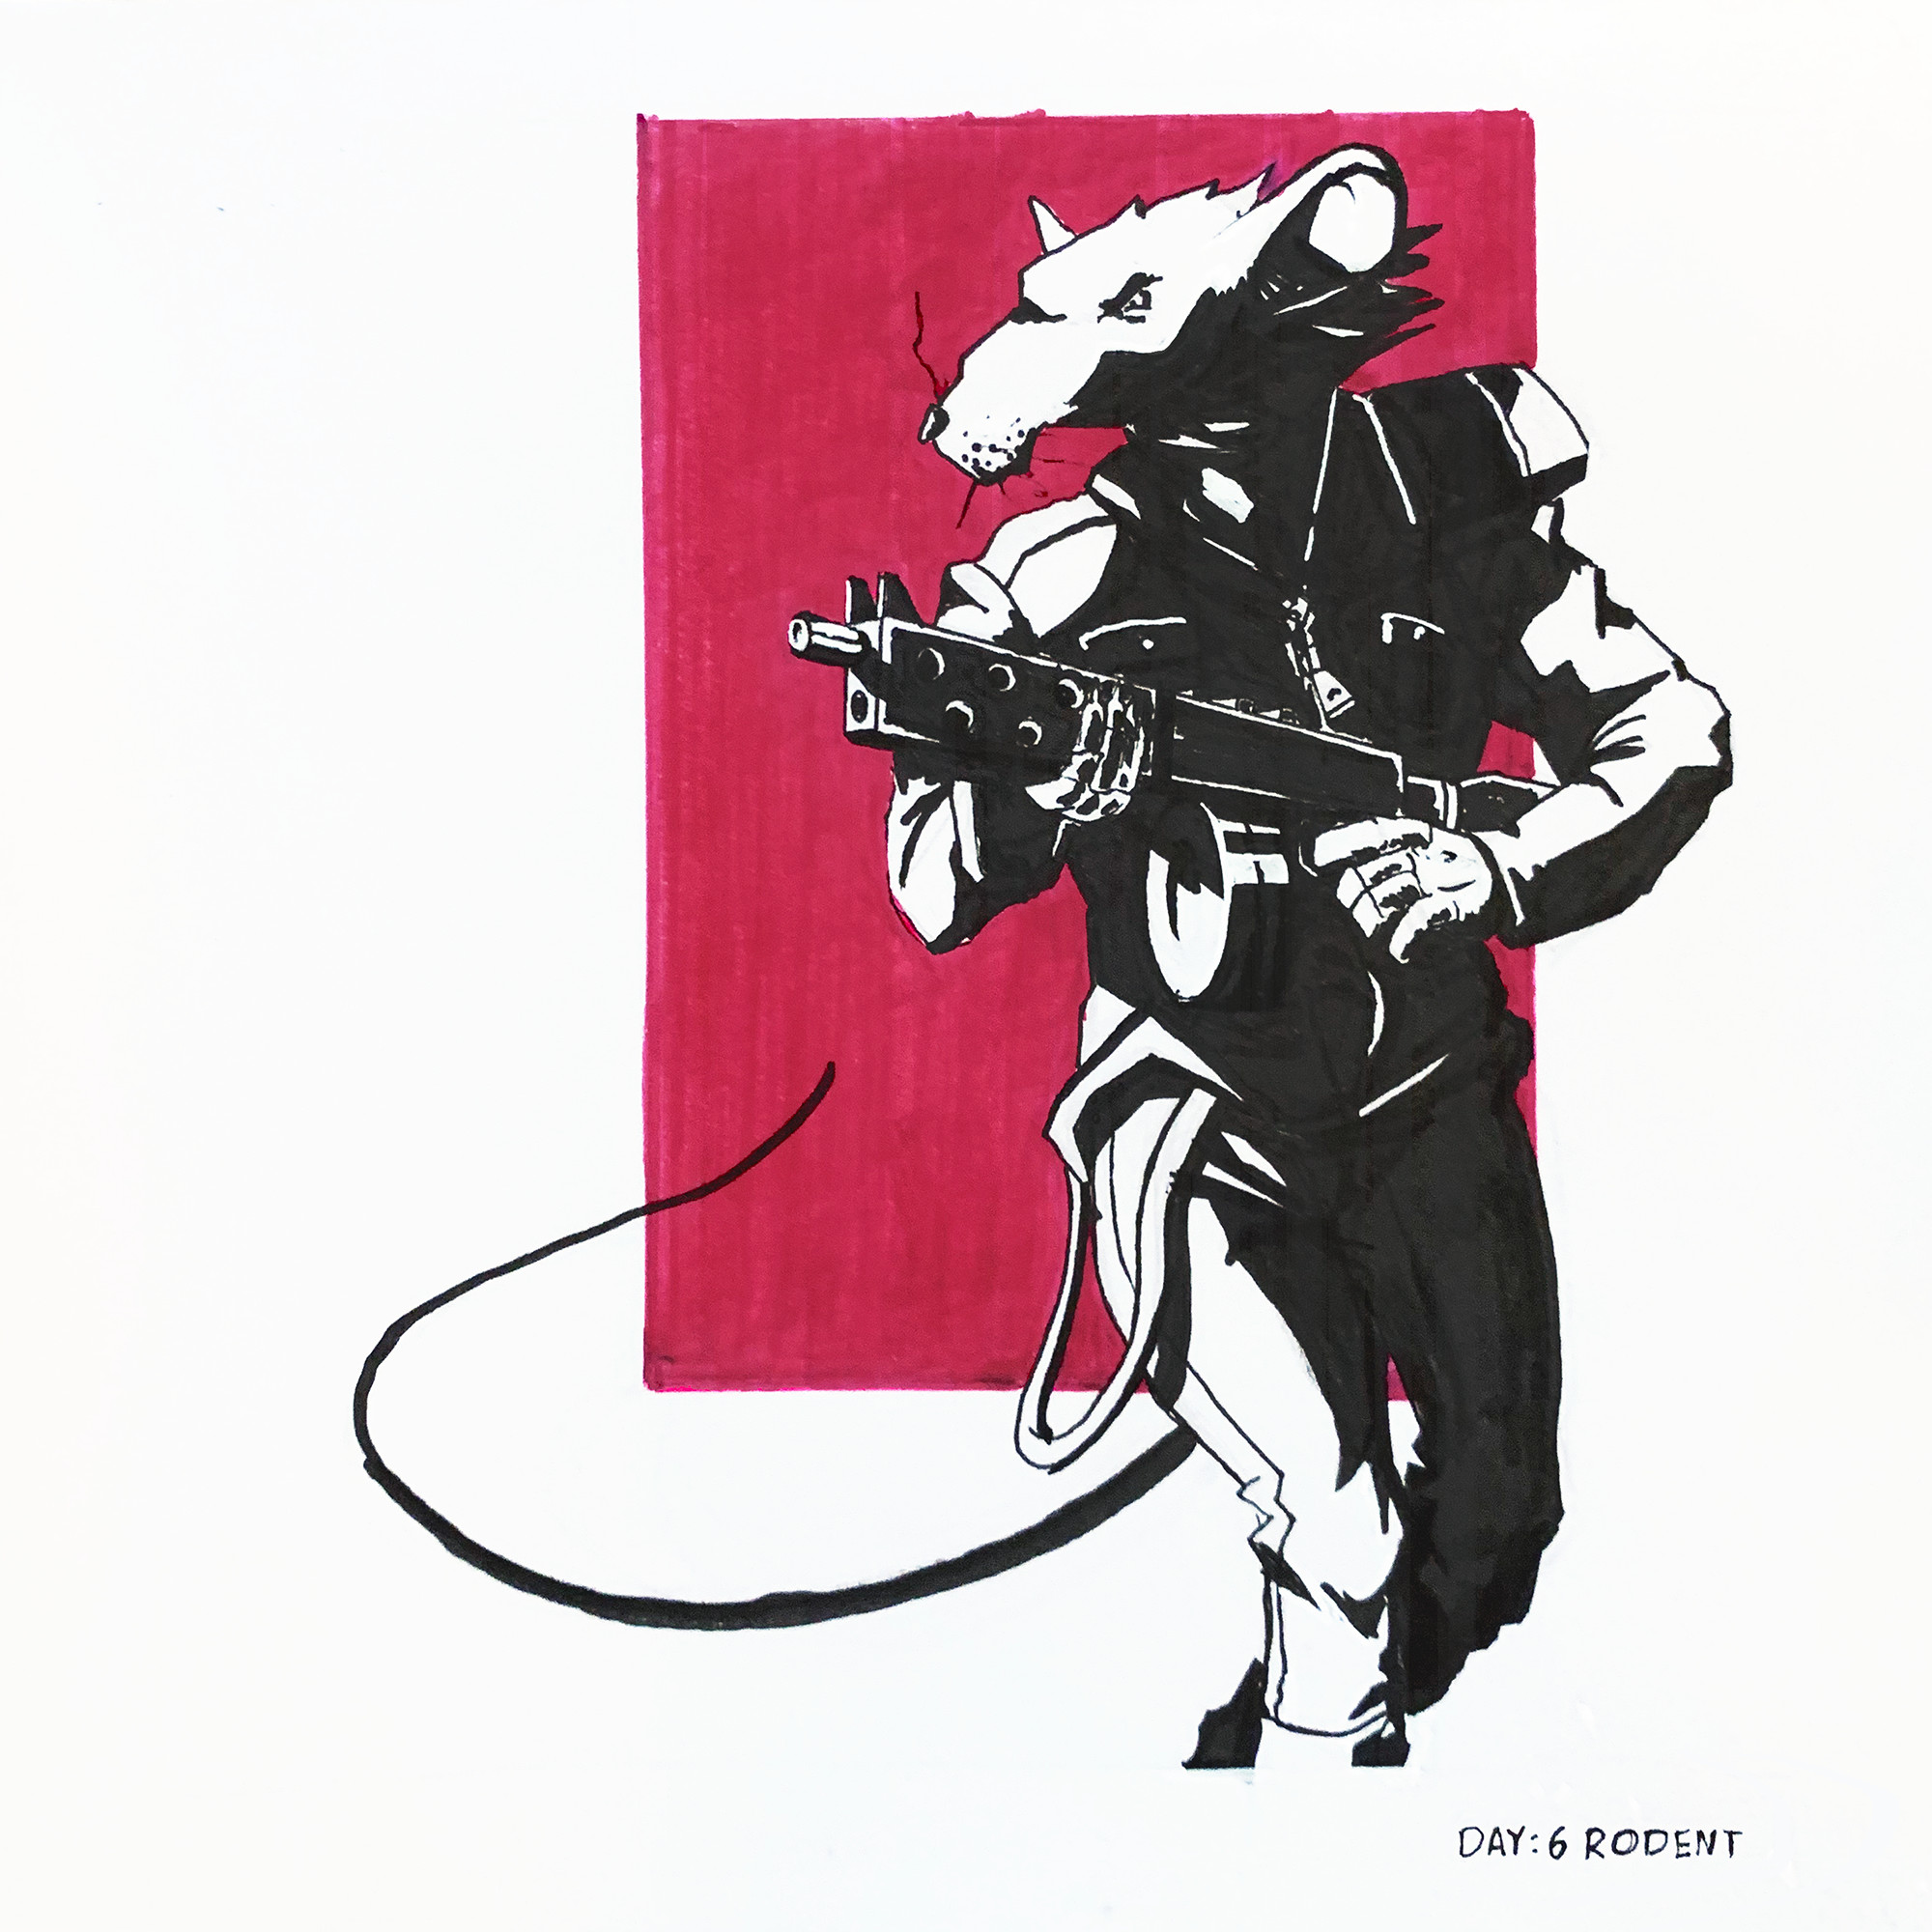 (Day 6: Rodent) He's comin' to control some pests.